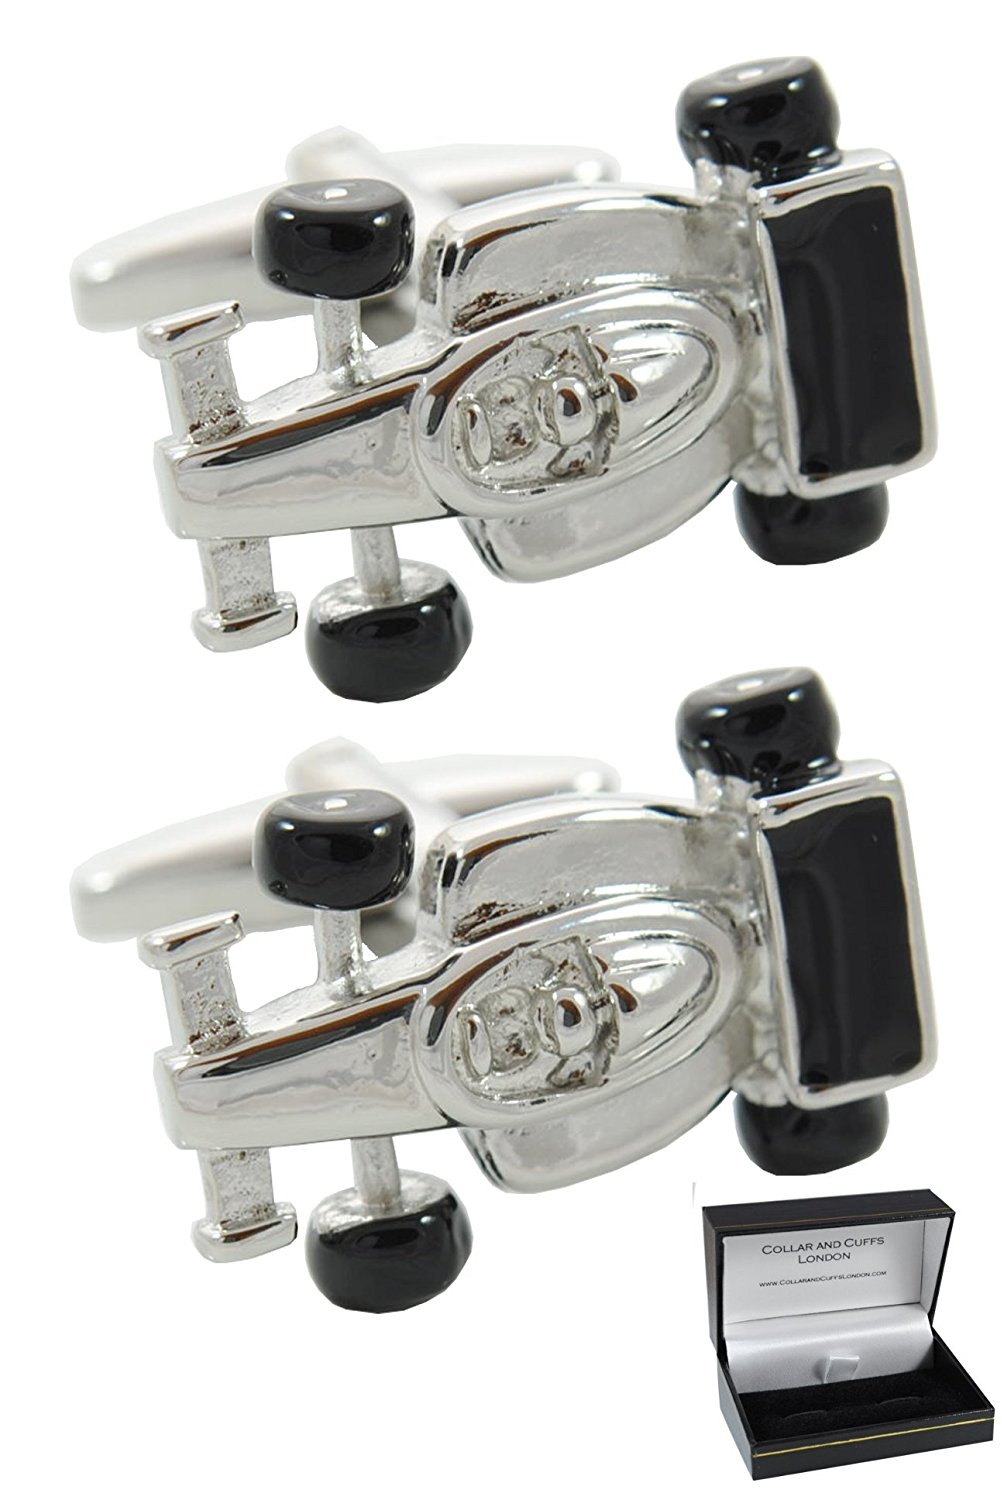 COLLAR AND CUFFS LONDON Premium Cufflinks with Presentation Gift Box Gear Stick Solid Brass Perfect for Car Lovers Round Gear Knob Black and White Colours